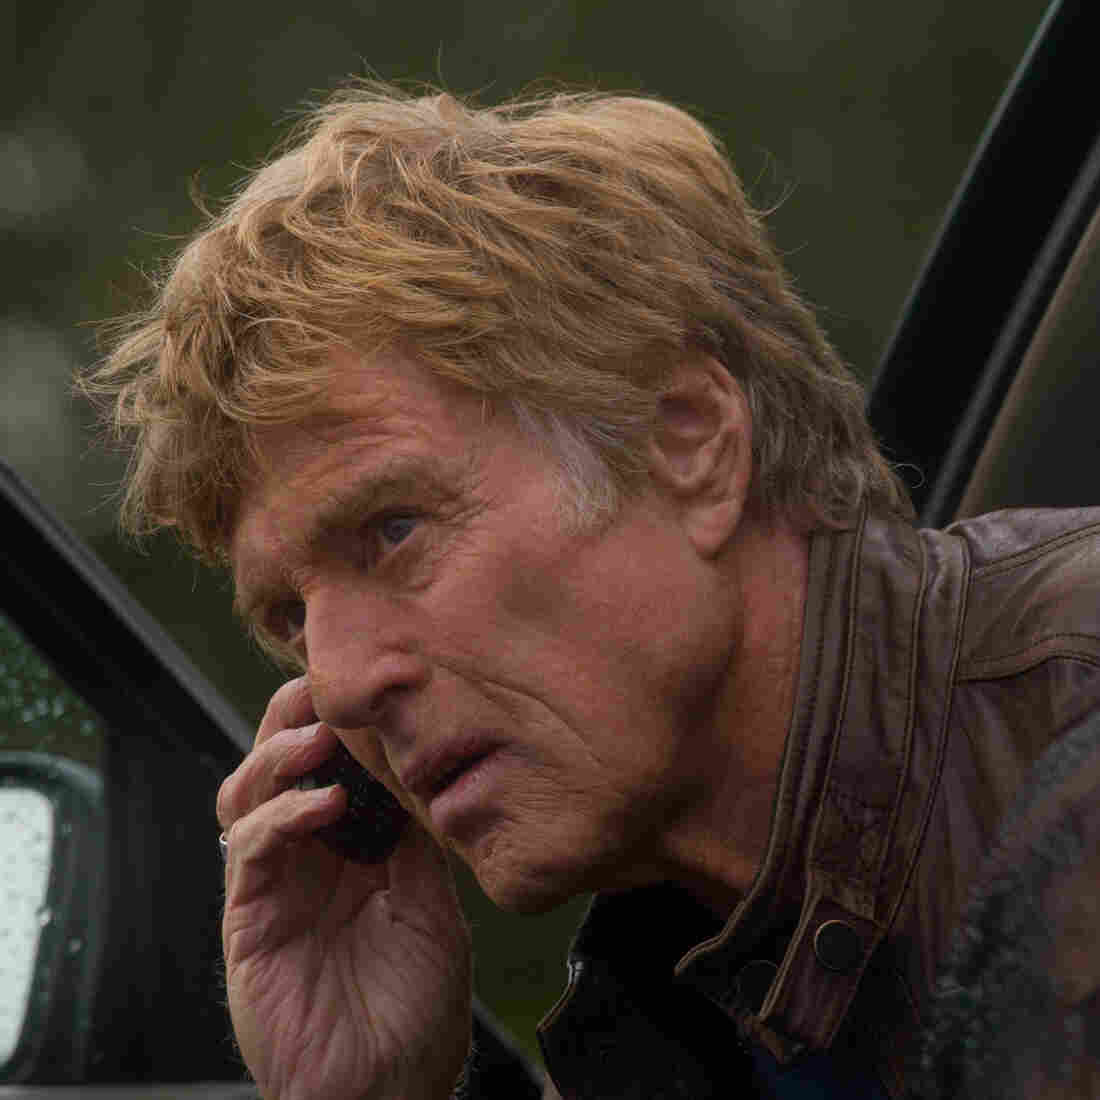 Robert Redford directs and stars as Jim Grant in The Company You Keep, a film about retired radicals living out nervous lives in hiding.